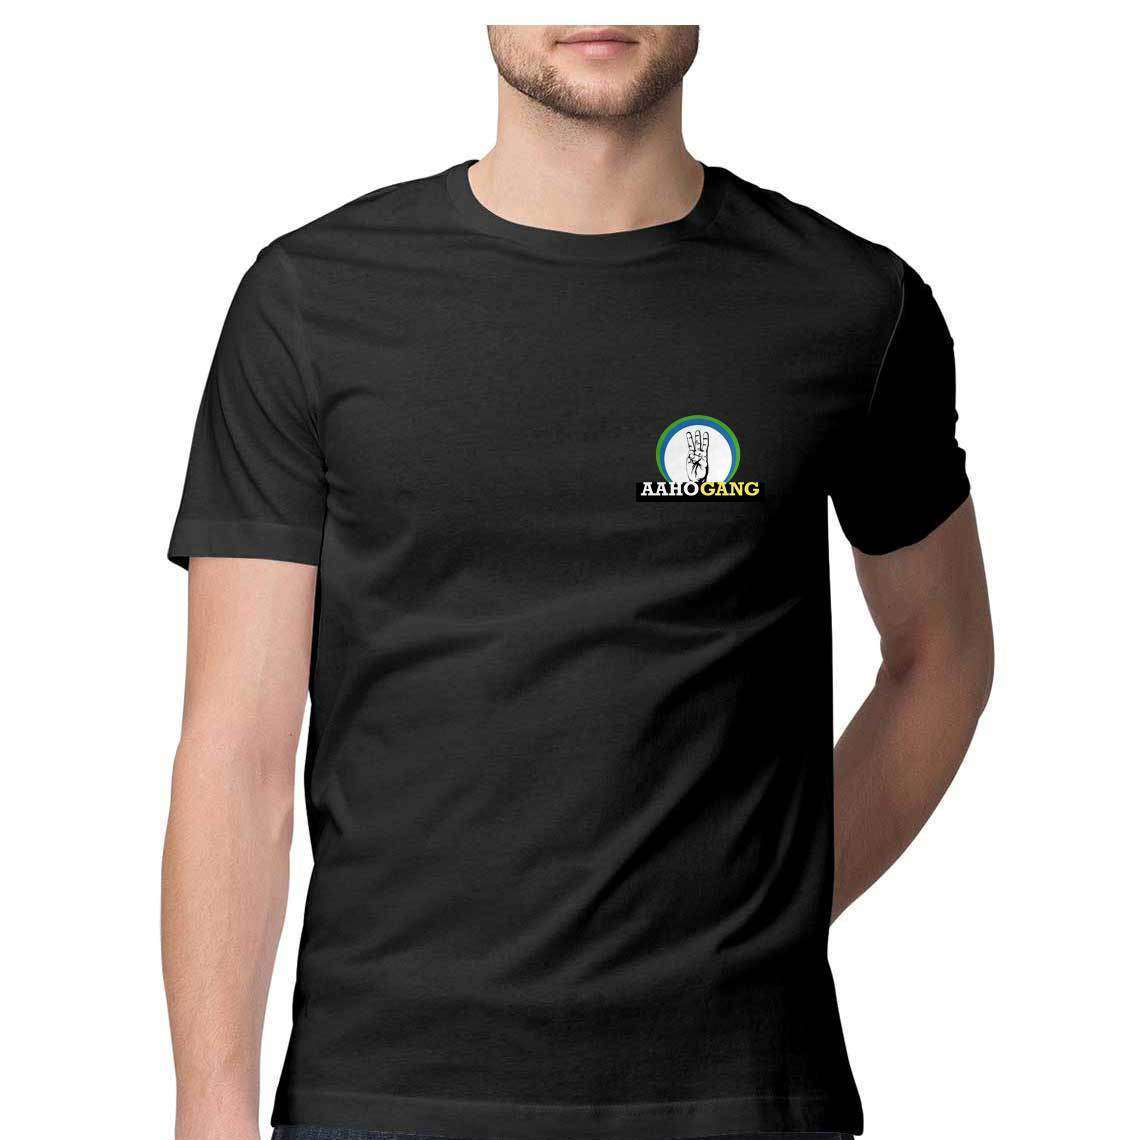 AahoGang T shirt / Digital Gandhi - Good Network by Digital Gandhi Digital Gandhi ,